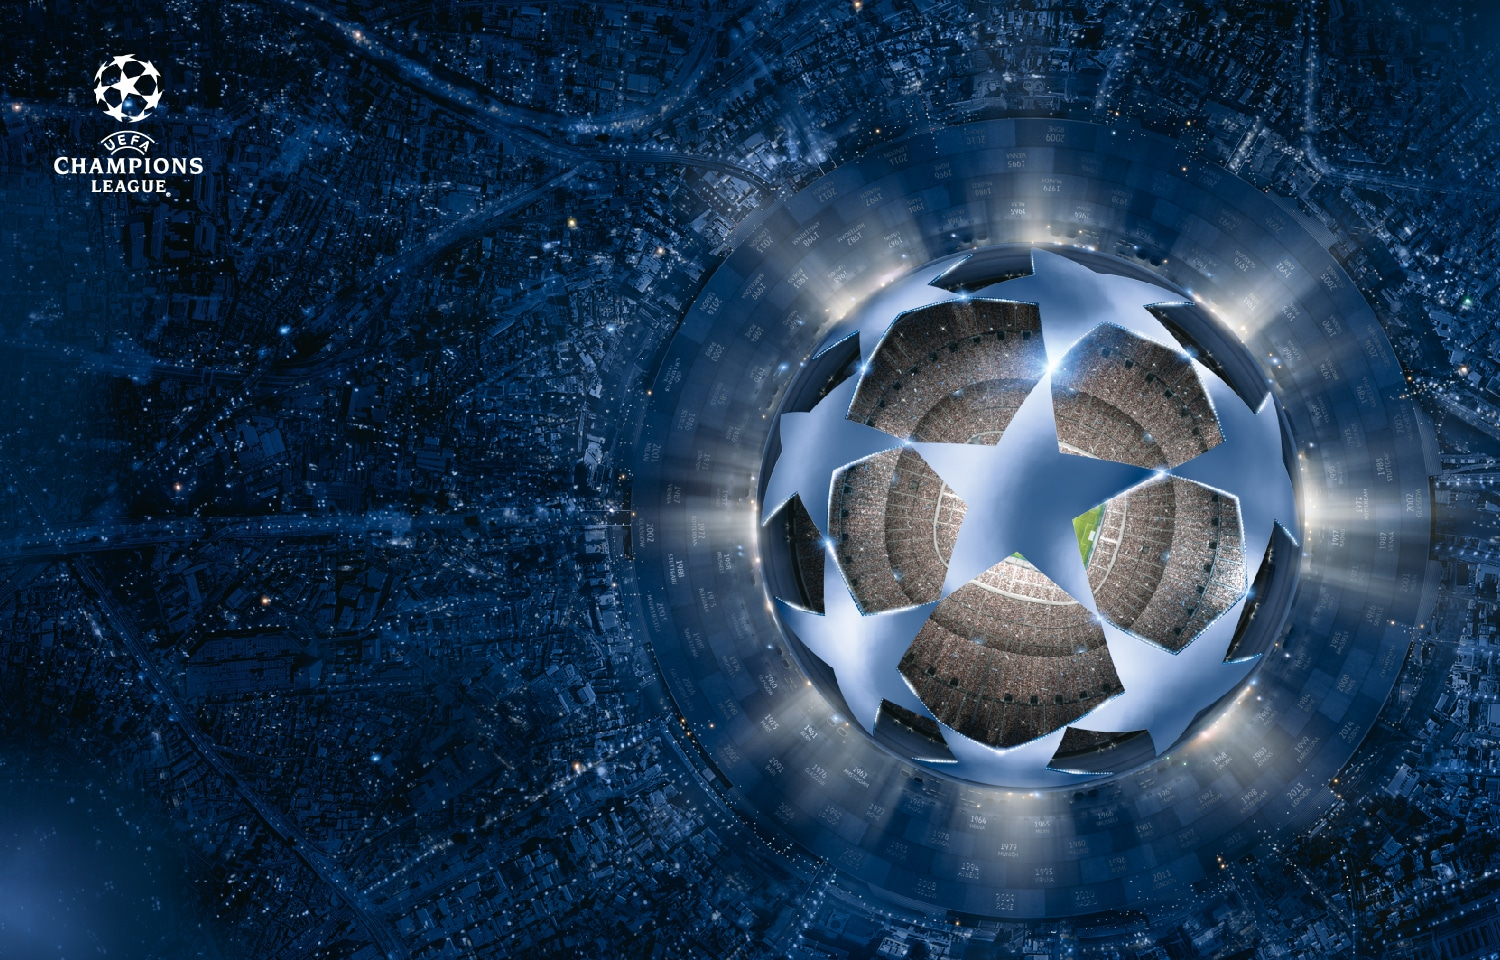 UEFA Champions League Highlights - 1 October 2019 1